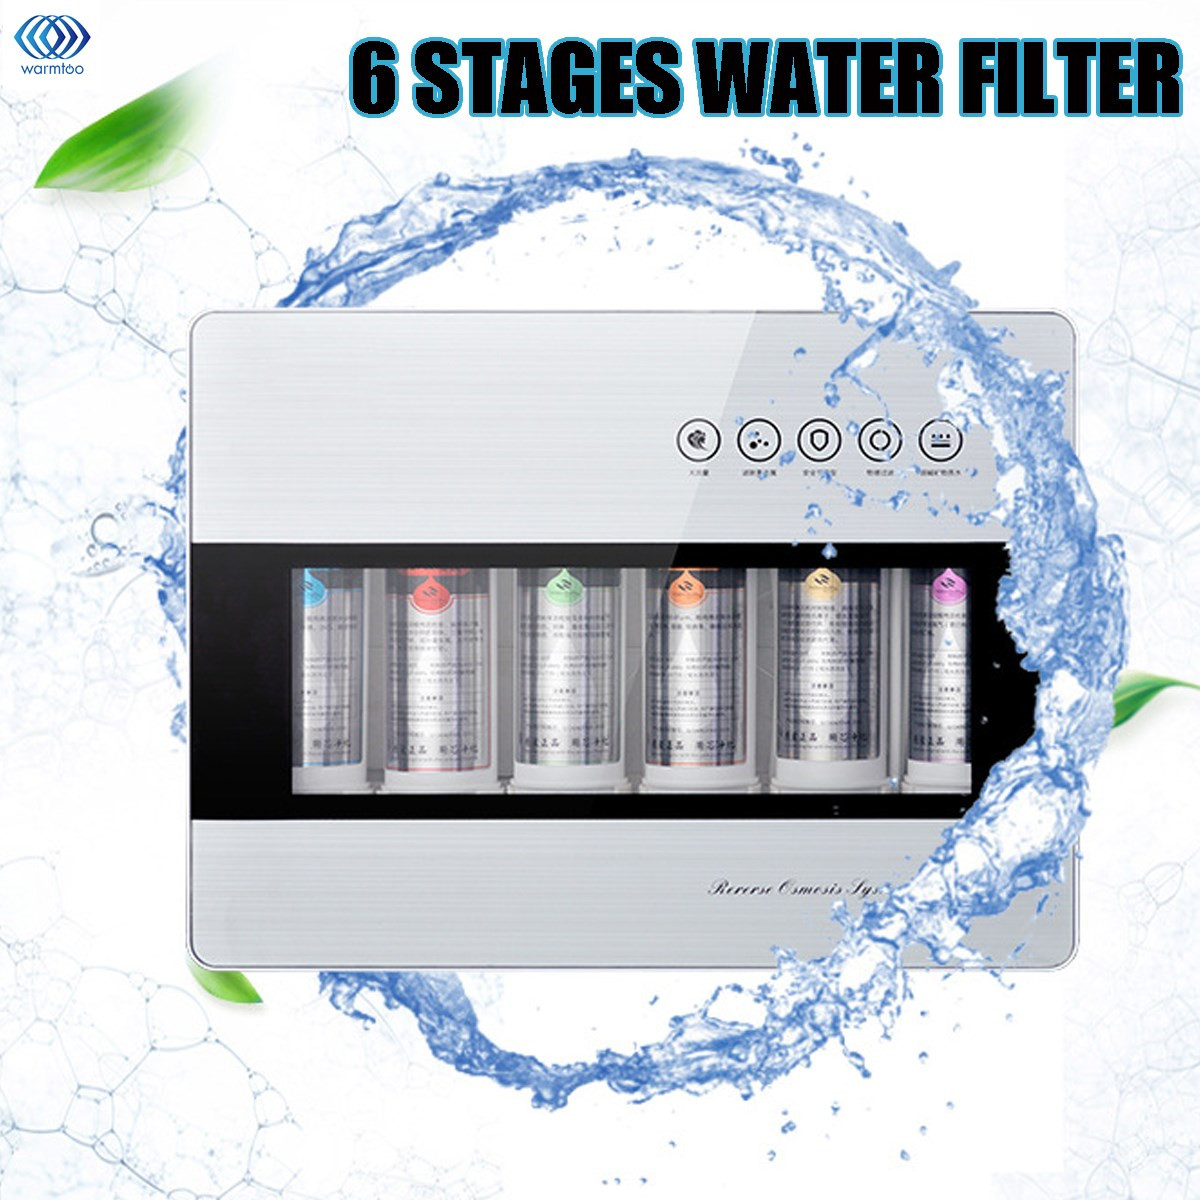 6 Stage Multi-function Undersink Home Clean Water Filter System Drinking Reverse Osmosis RO UF Kitchen Purifing Water Direct мат плата для пк supermicro mbd x10sba o socket 1150 intel c226 4xddr3 1xpci e 8x нет 8xsataiii atx retail